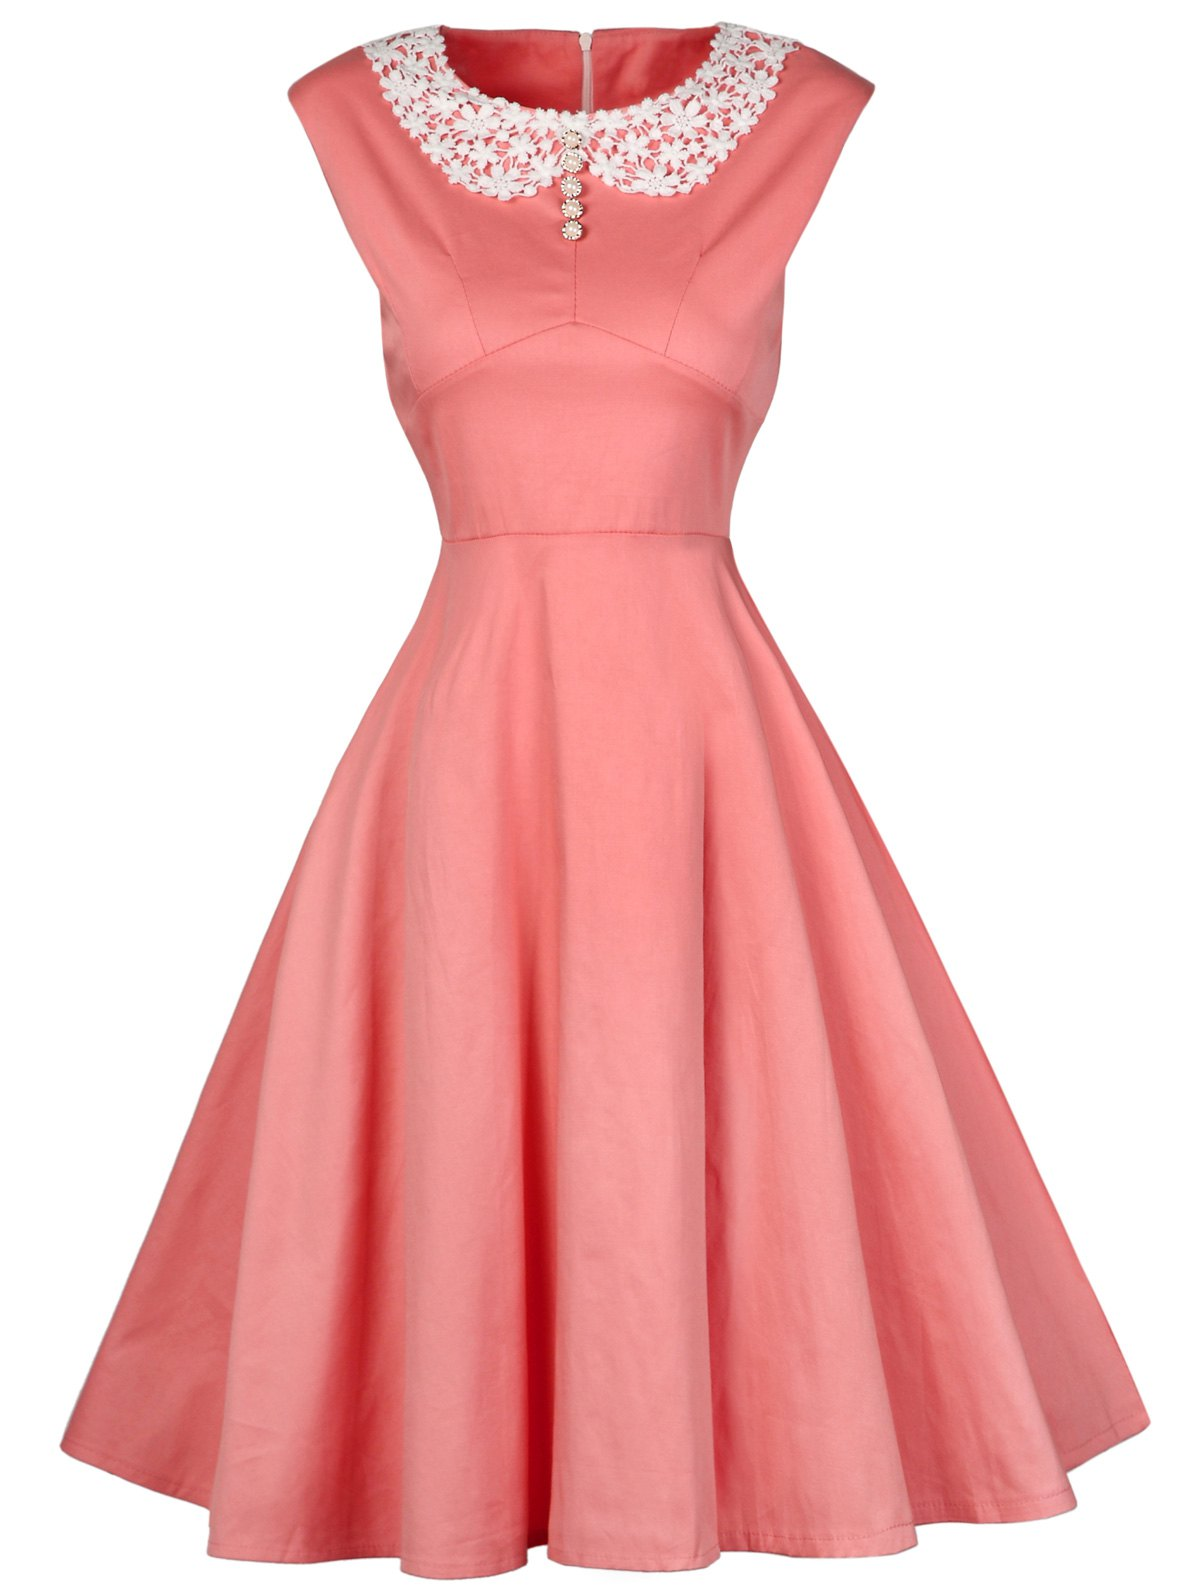 Vintage High Waist Lace Insert Party Dress - PINK S